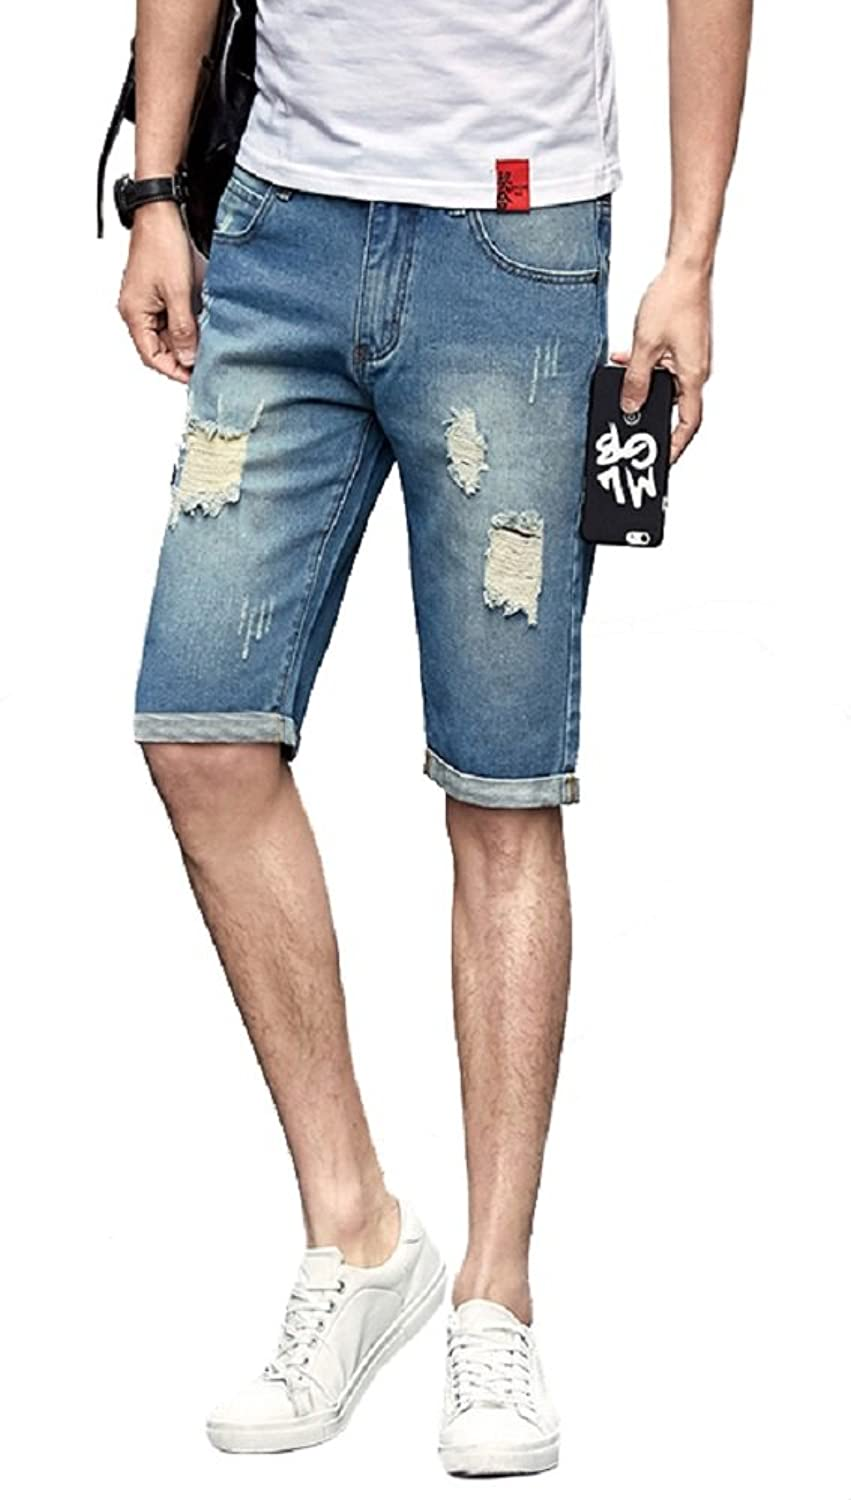 Allonly Men's Fashion Casual Destructed Ripped Slim Fit Denim Shorts Jean Short With Broken Holes